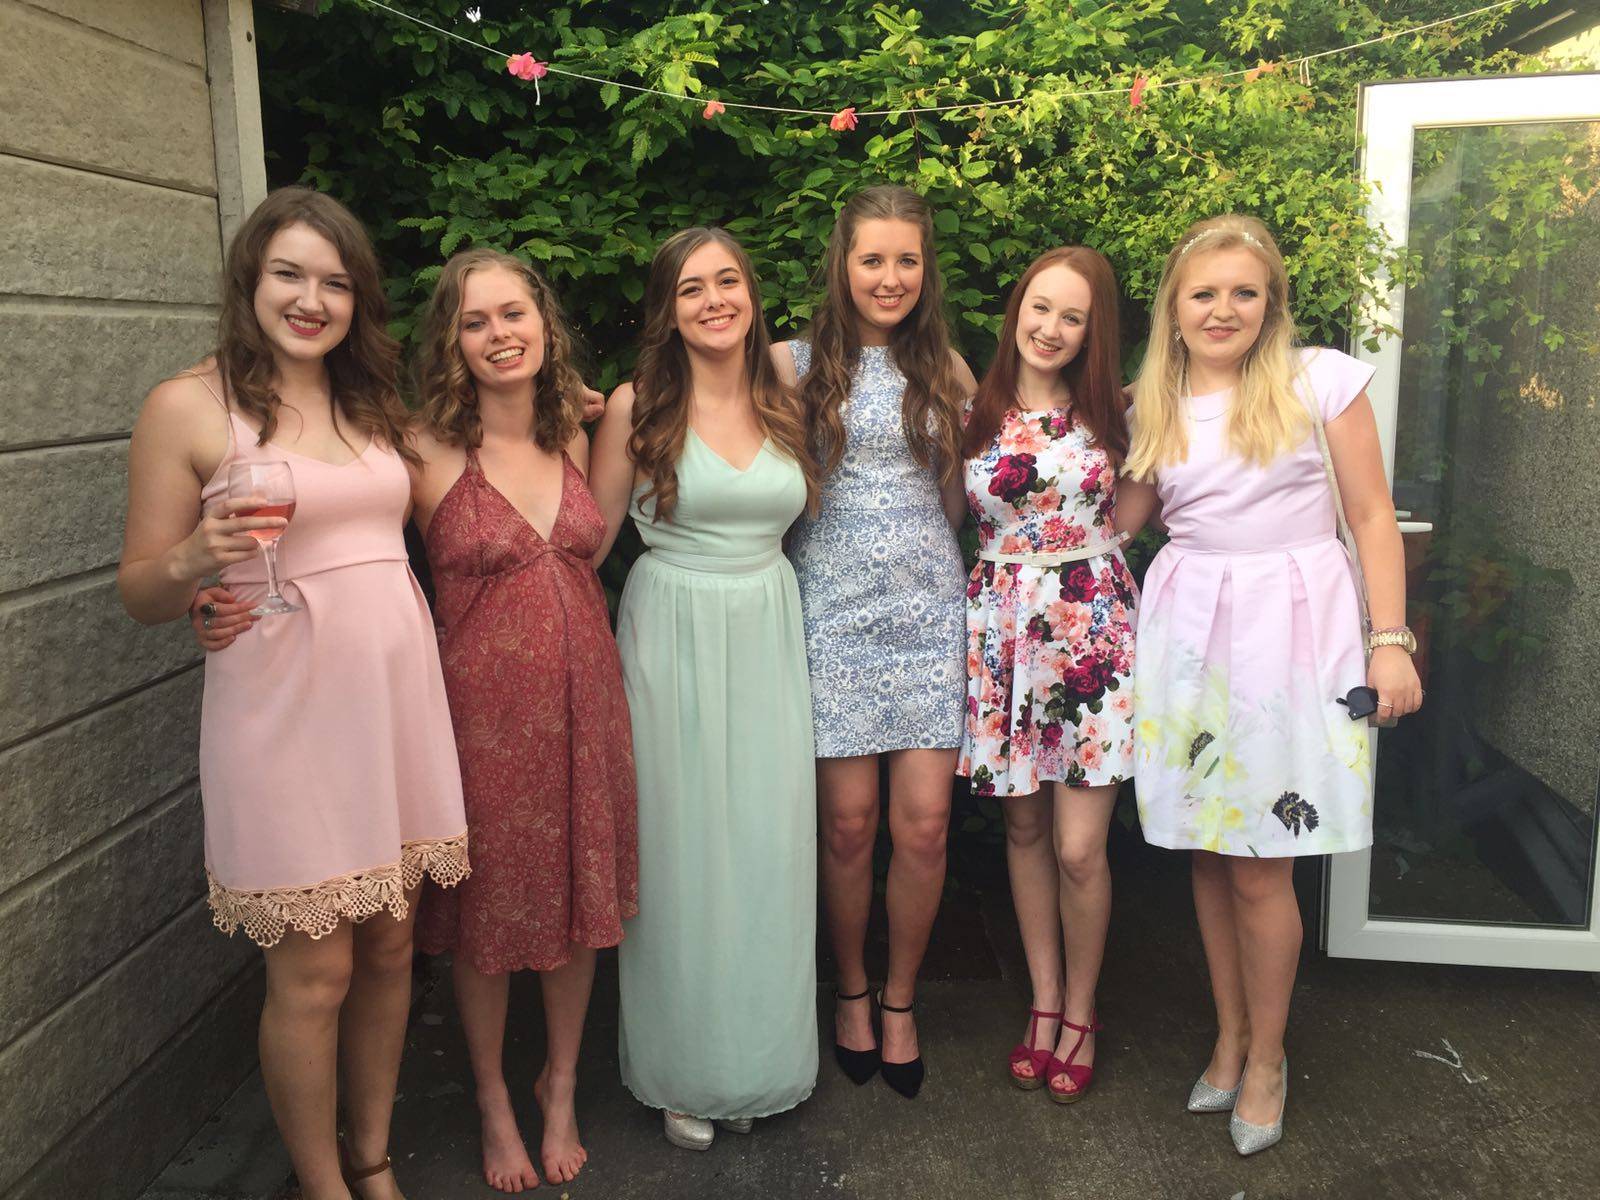 pippa and five university friends, stood outdoors in formal dresses and smiling